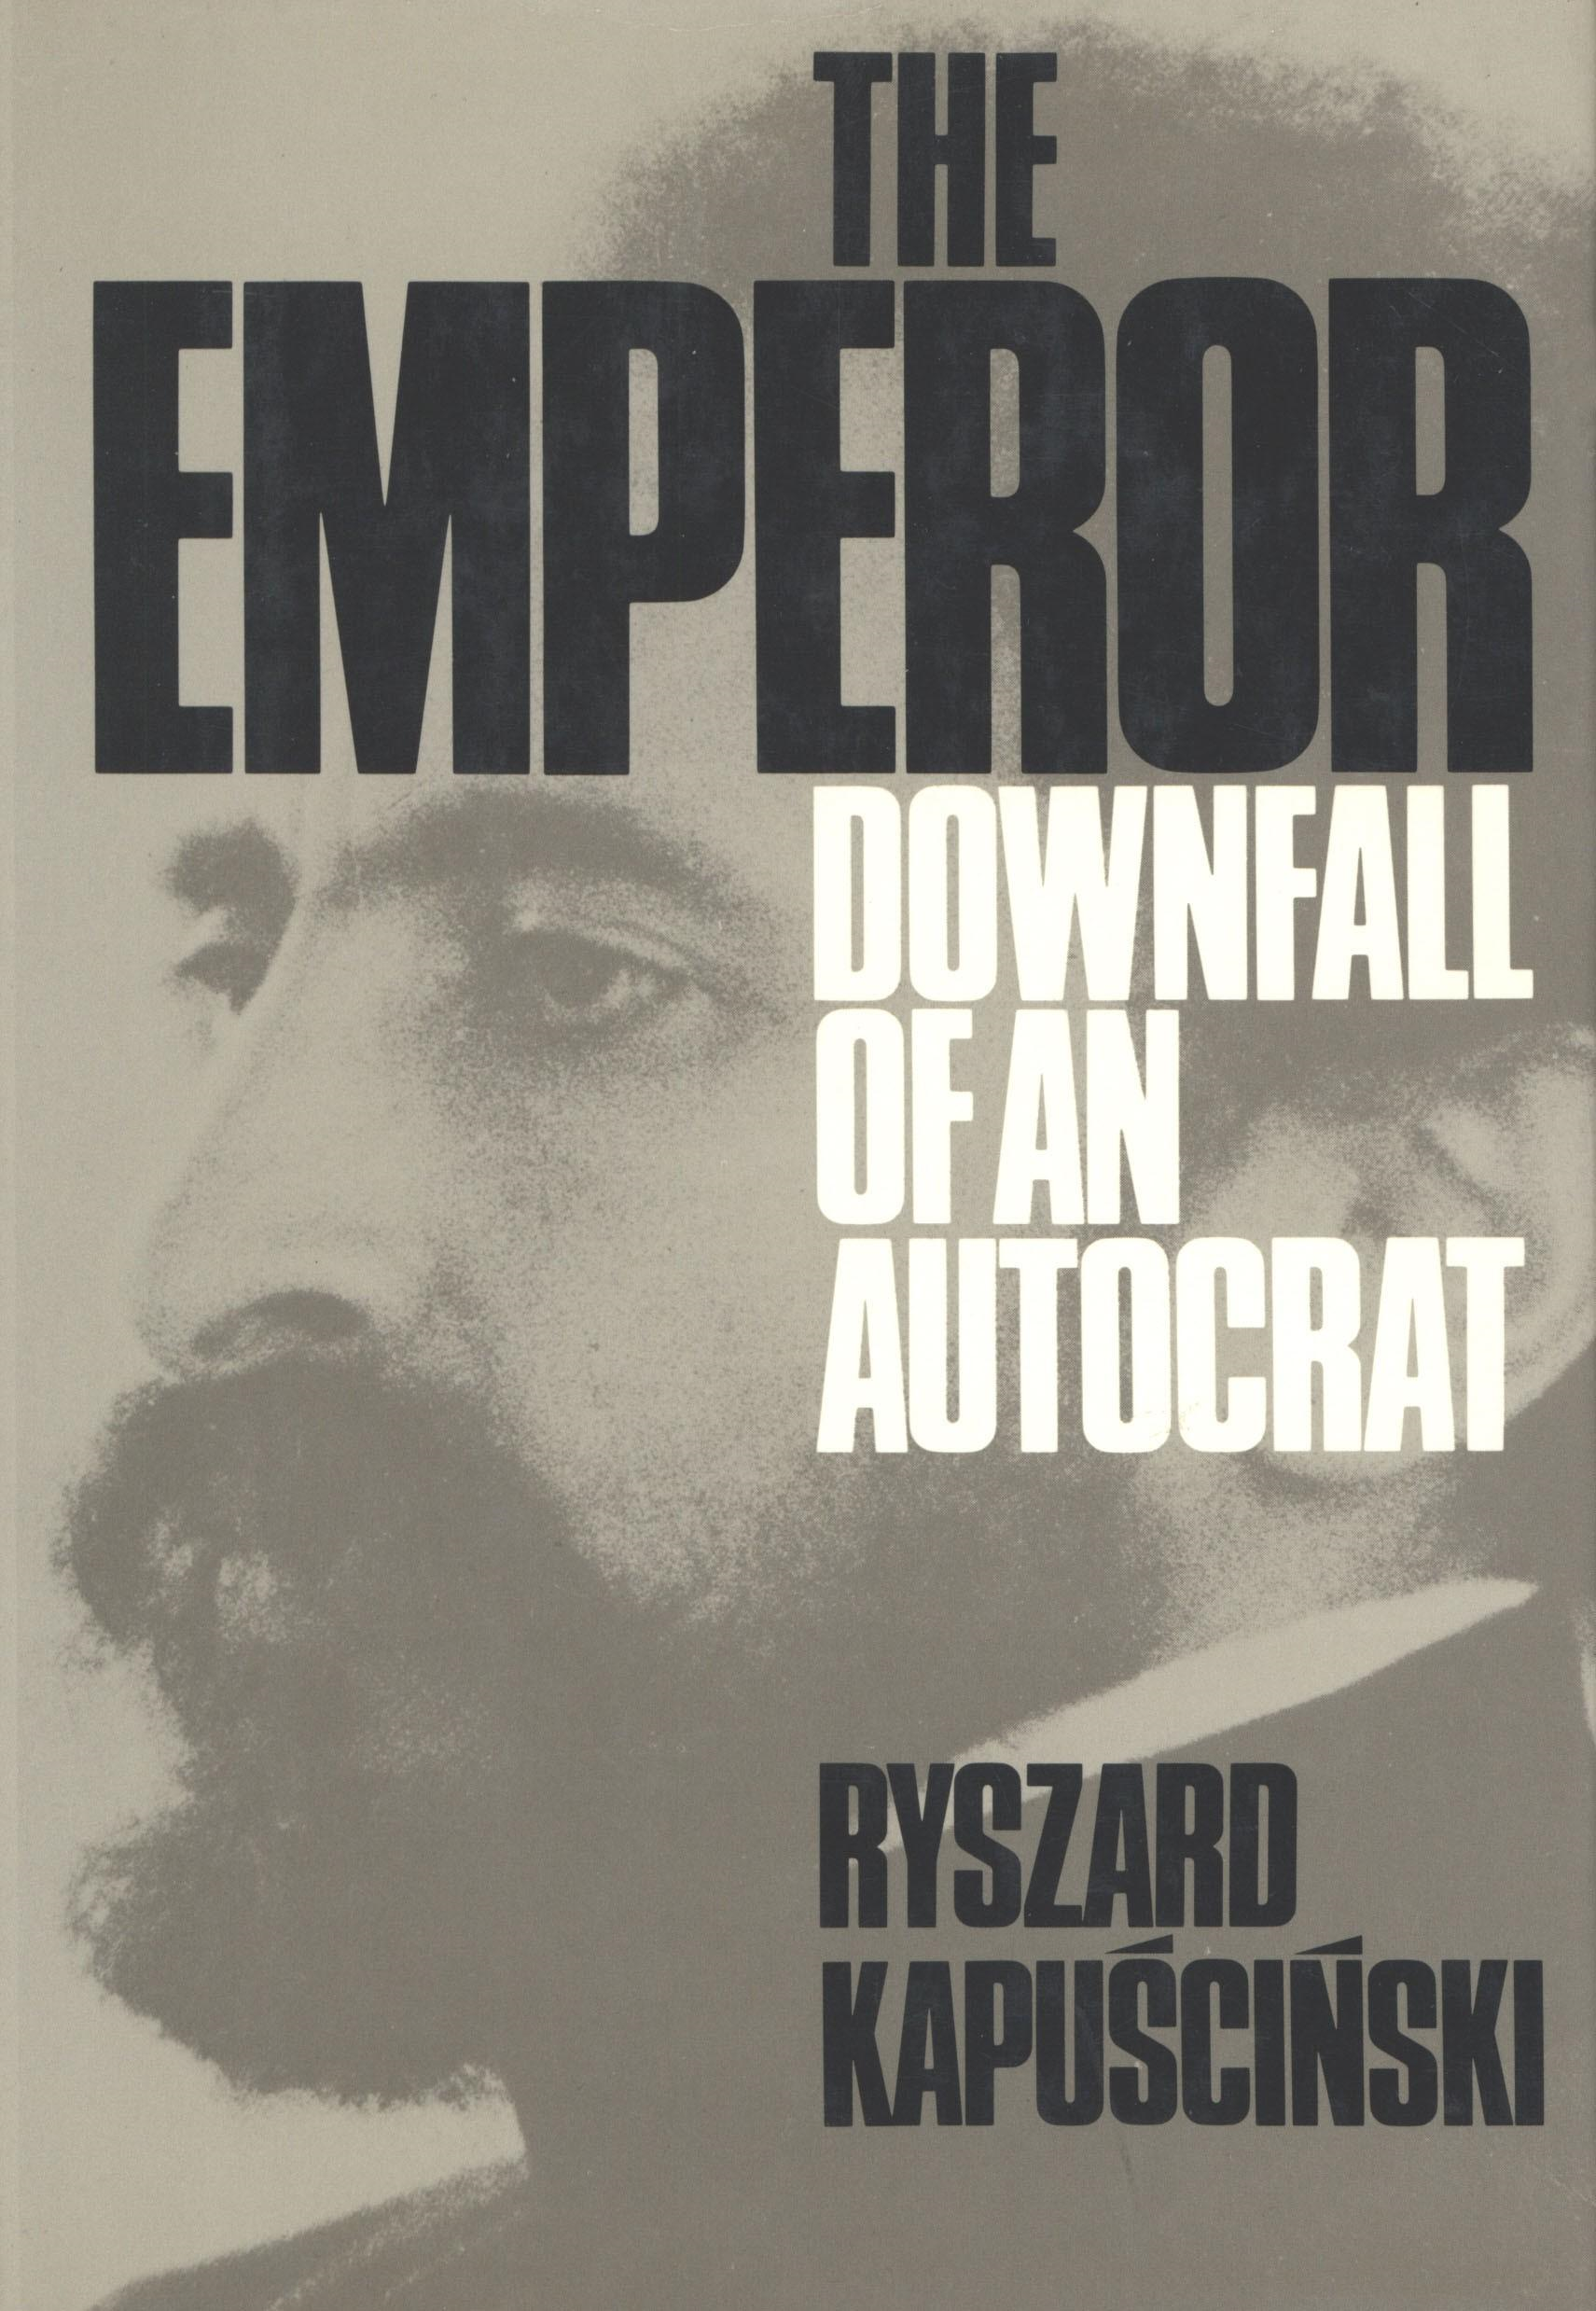 The Emperor: Downfall of an Autocrat